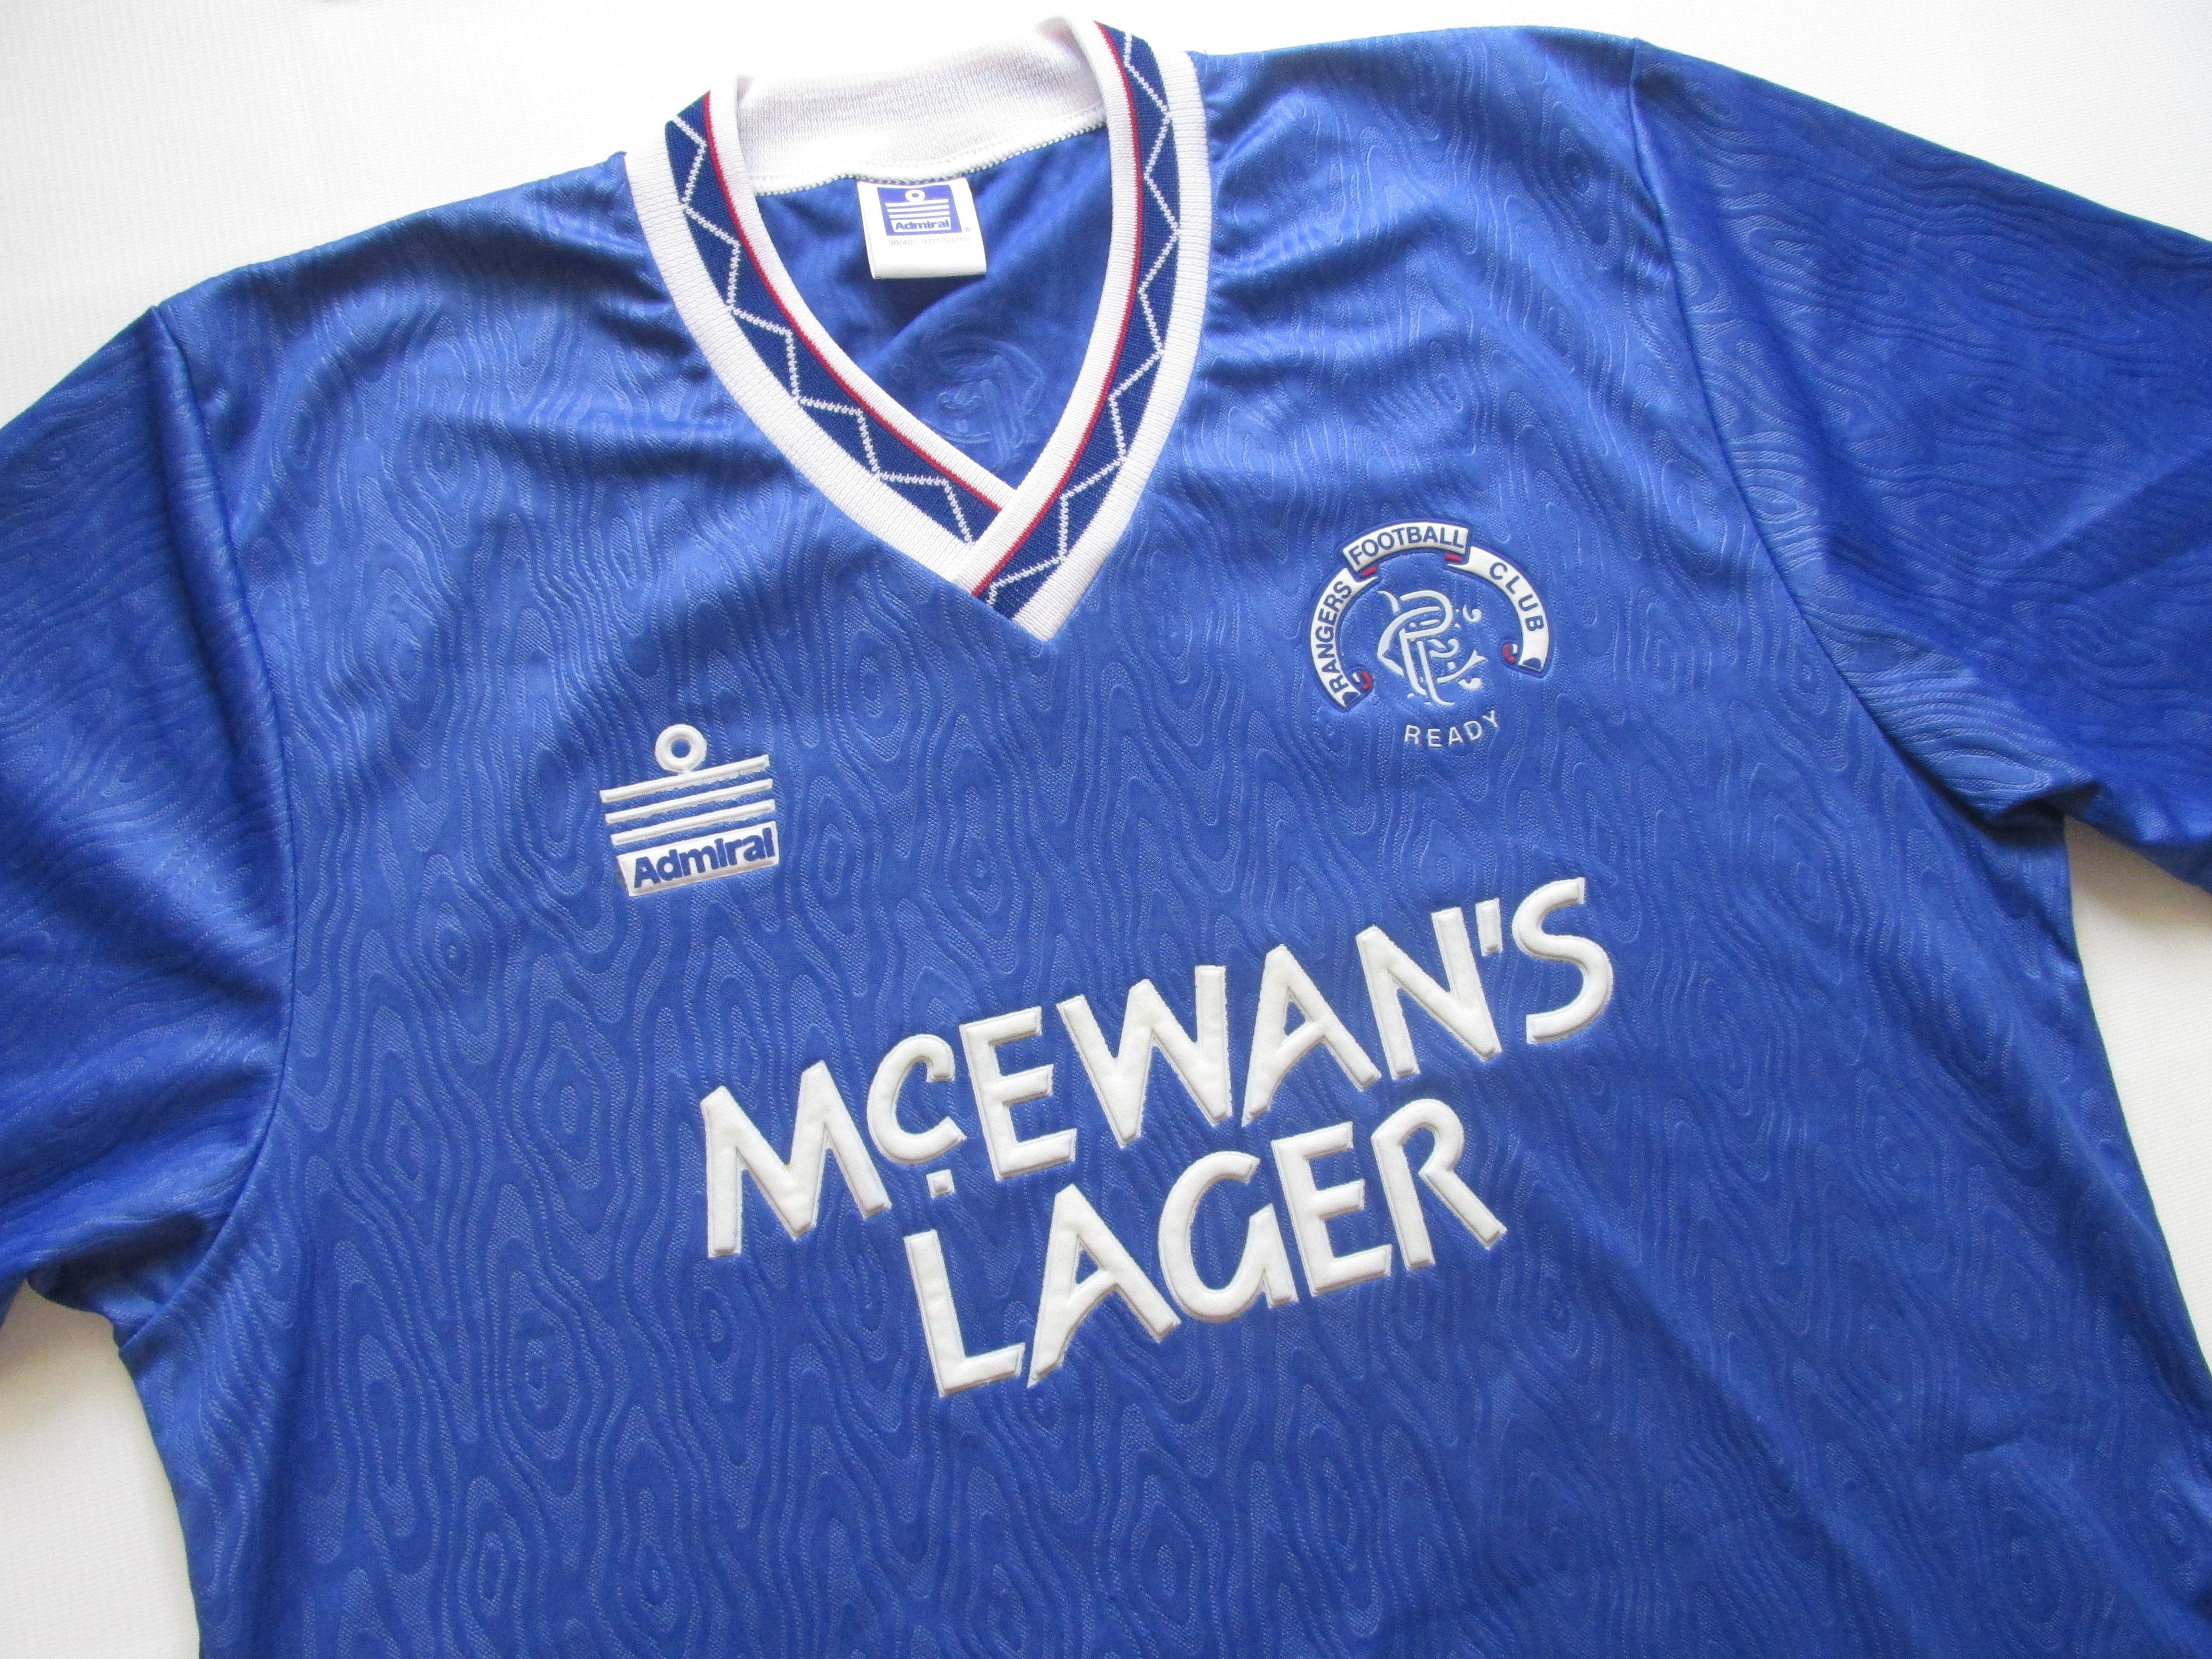 cd727afff Rangers Glasgow 1990 1991 1992 home football shirt by Admiral vintage 90s  retro soccer jersey RFC Scotland  Rangers  Glasgow  Scotland  RFC  90s   vintage ...